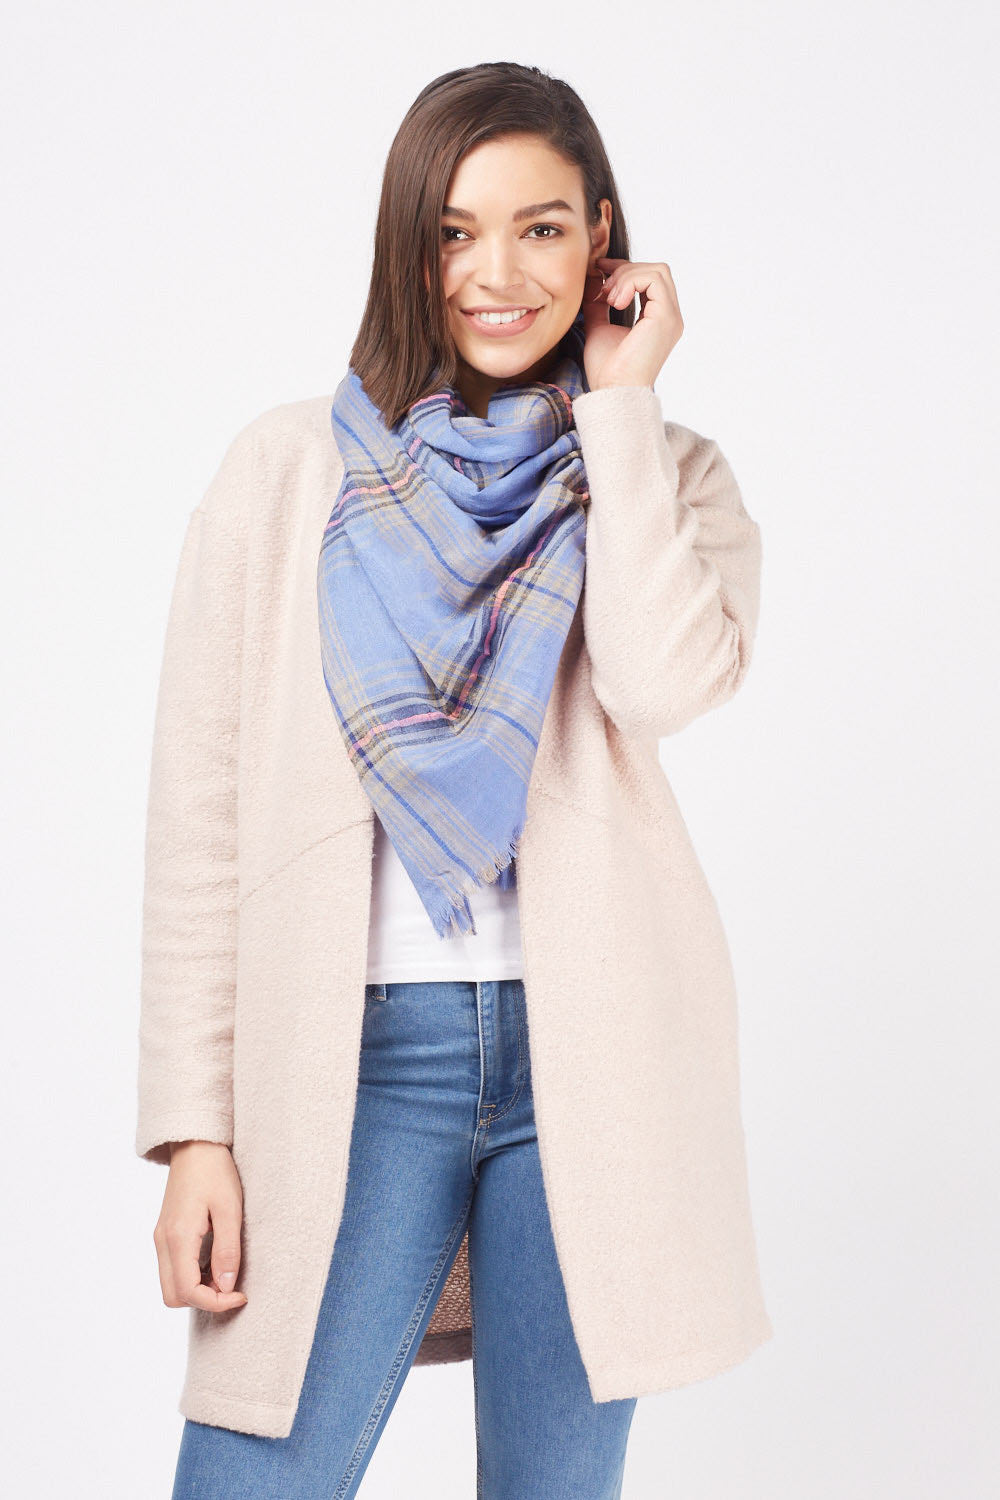 Amy Check Print Sheer Scarf - Woven Trends